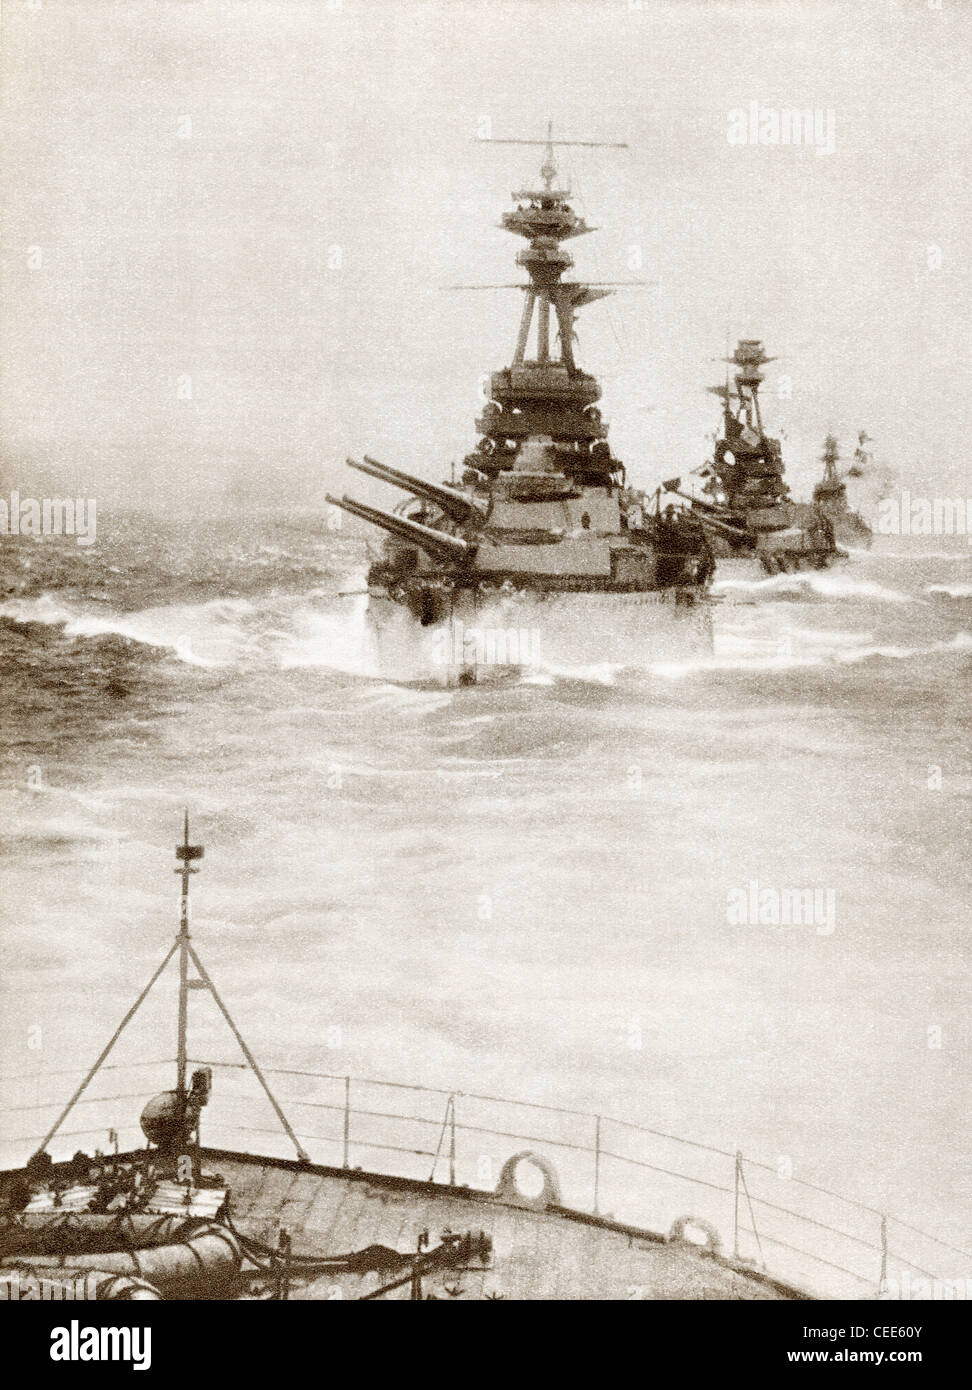 Battleships from a Battle Squadron of the Grand Fleet patrolling the North Sea in 1916 during World War I. - Stock Image